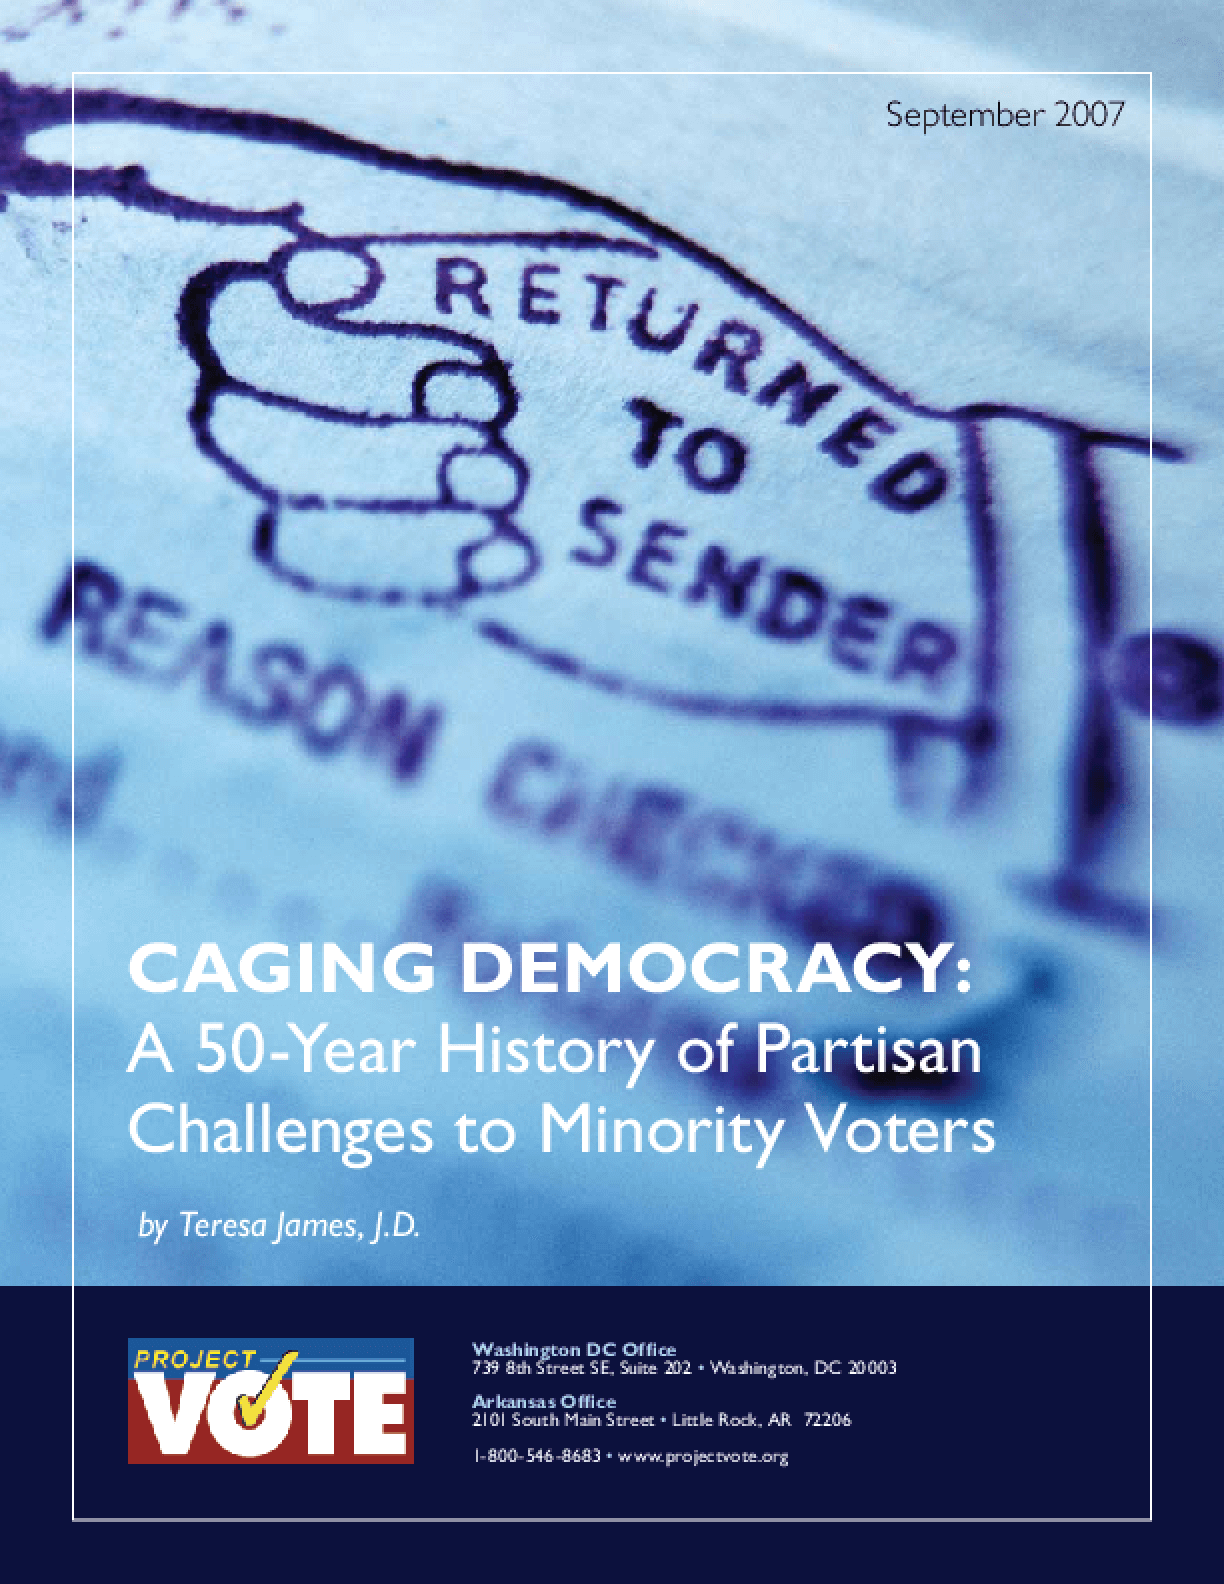 Caging Democracy: A 50-Year History of Partisan Challenges to Minority Voters